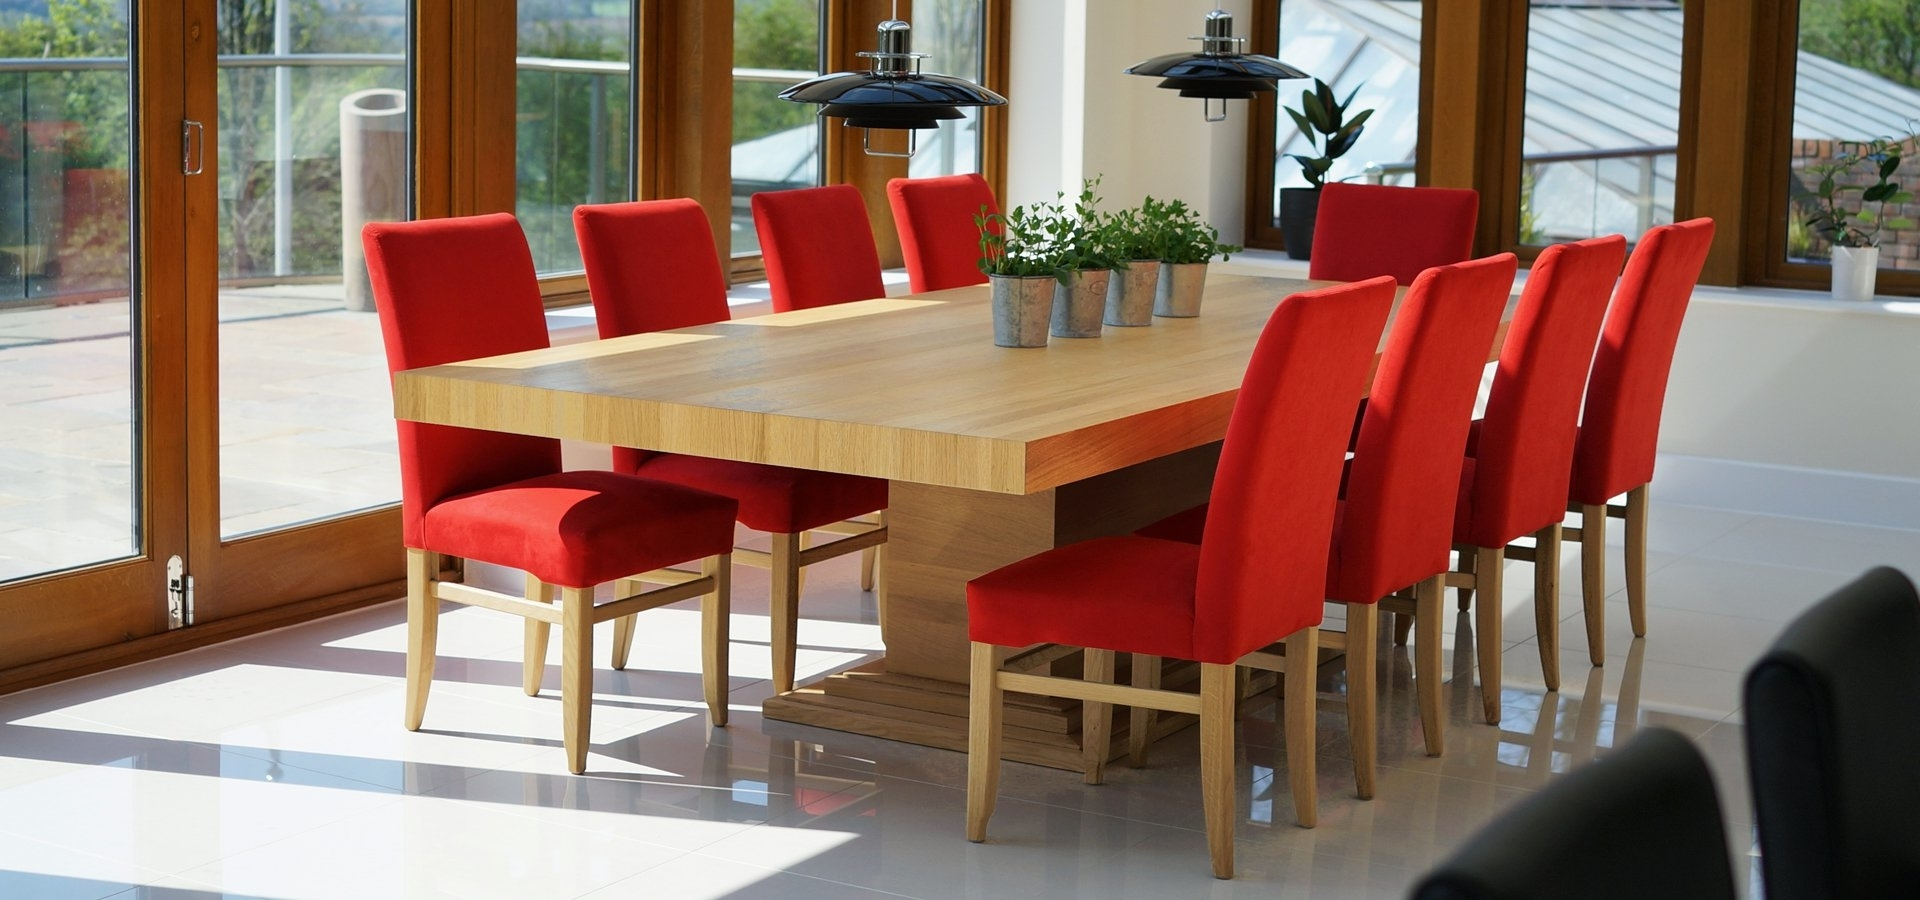 Oak Dining Suites Intended For Recent Contemporary Dining Tables & Furnitureberrydesign (View 21 of 25)